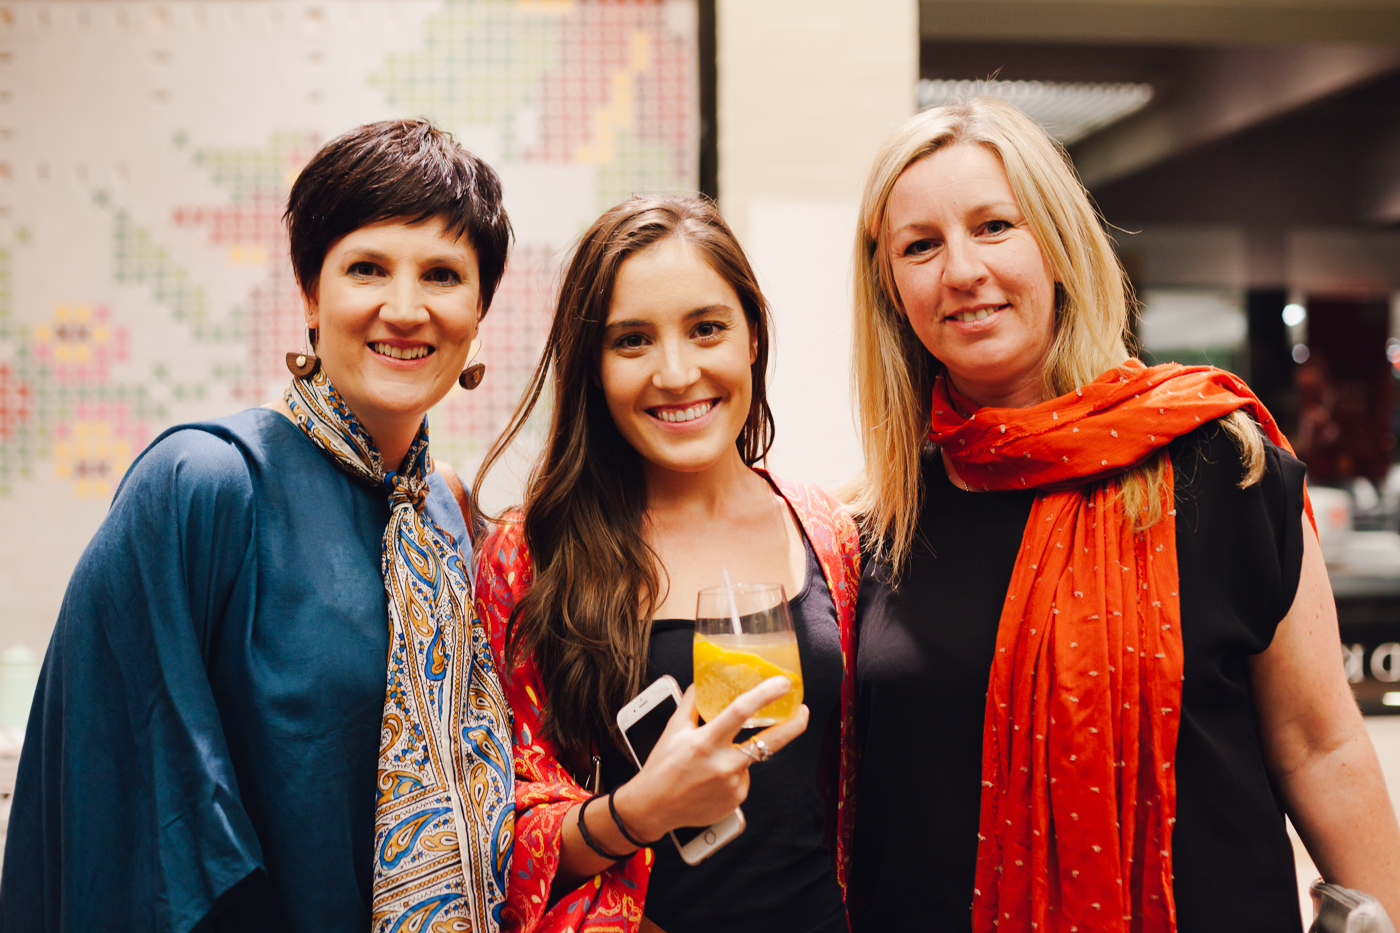 Eleesa Howard, Bianca Deguara & Annika Oja-Corp | NEW AGAIN by Petrina Turner Design for Designer Rugs | The launch event